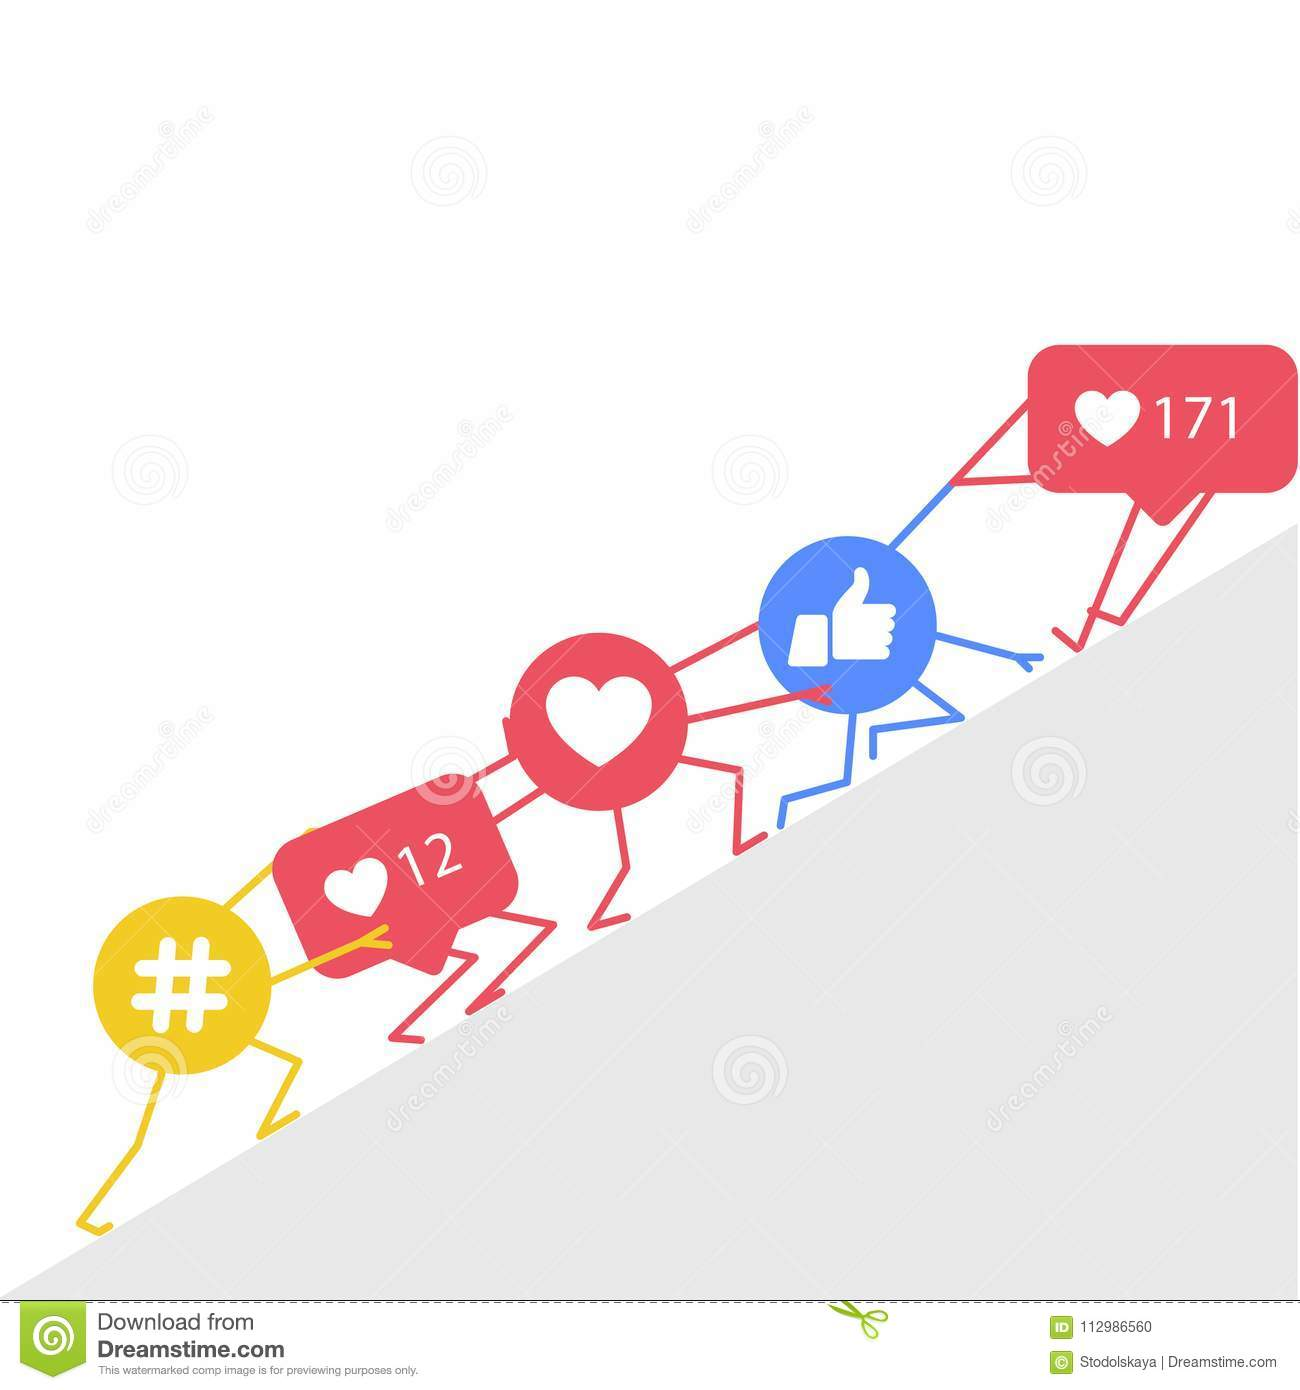 Smm promotion and marketing - hashtags icon, likes and rating